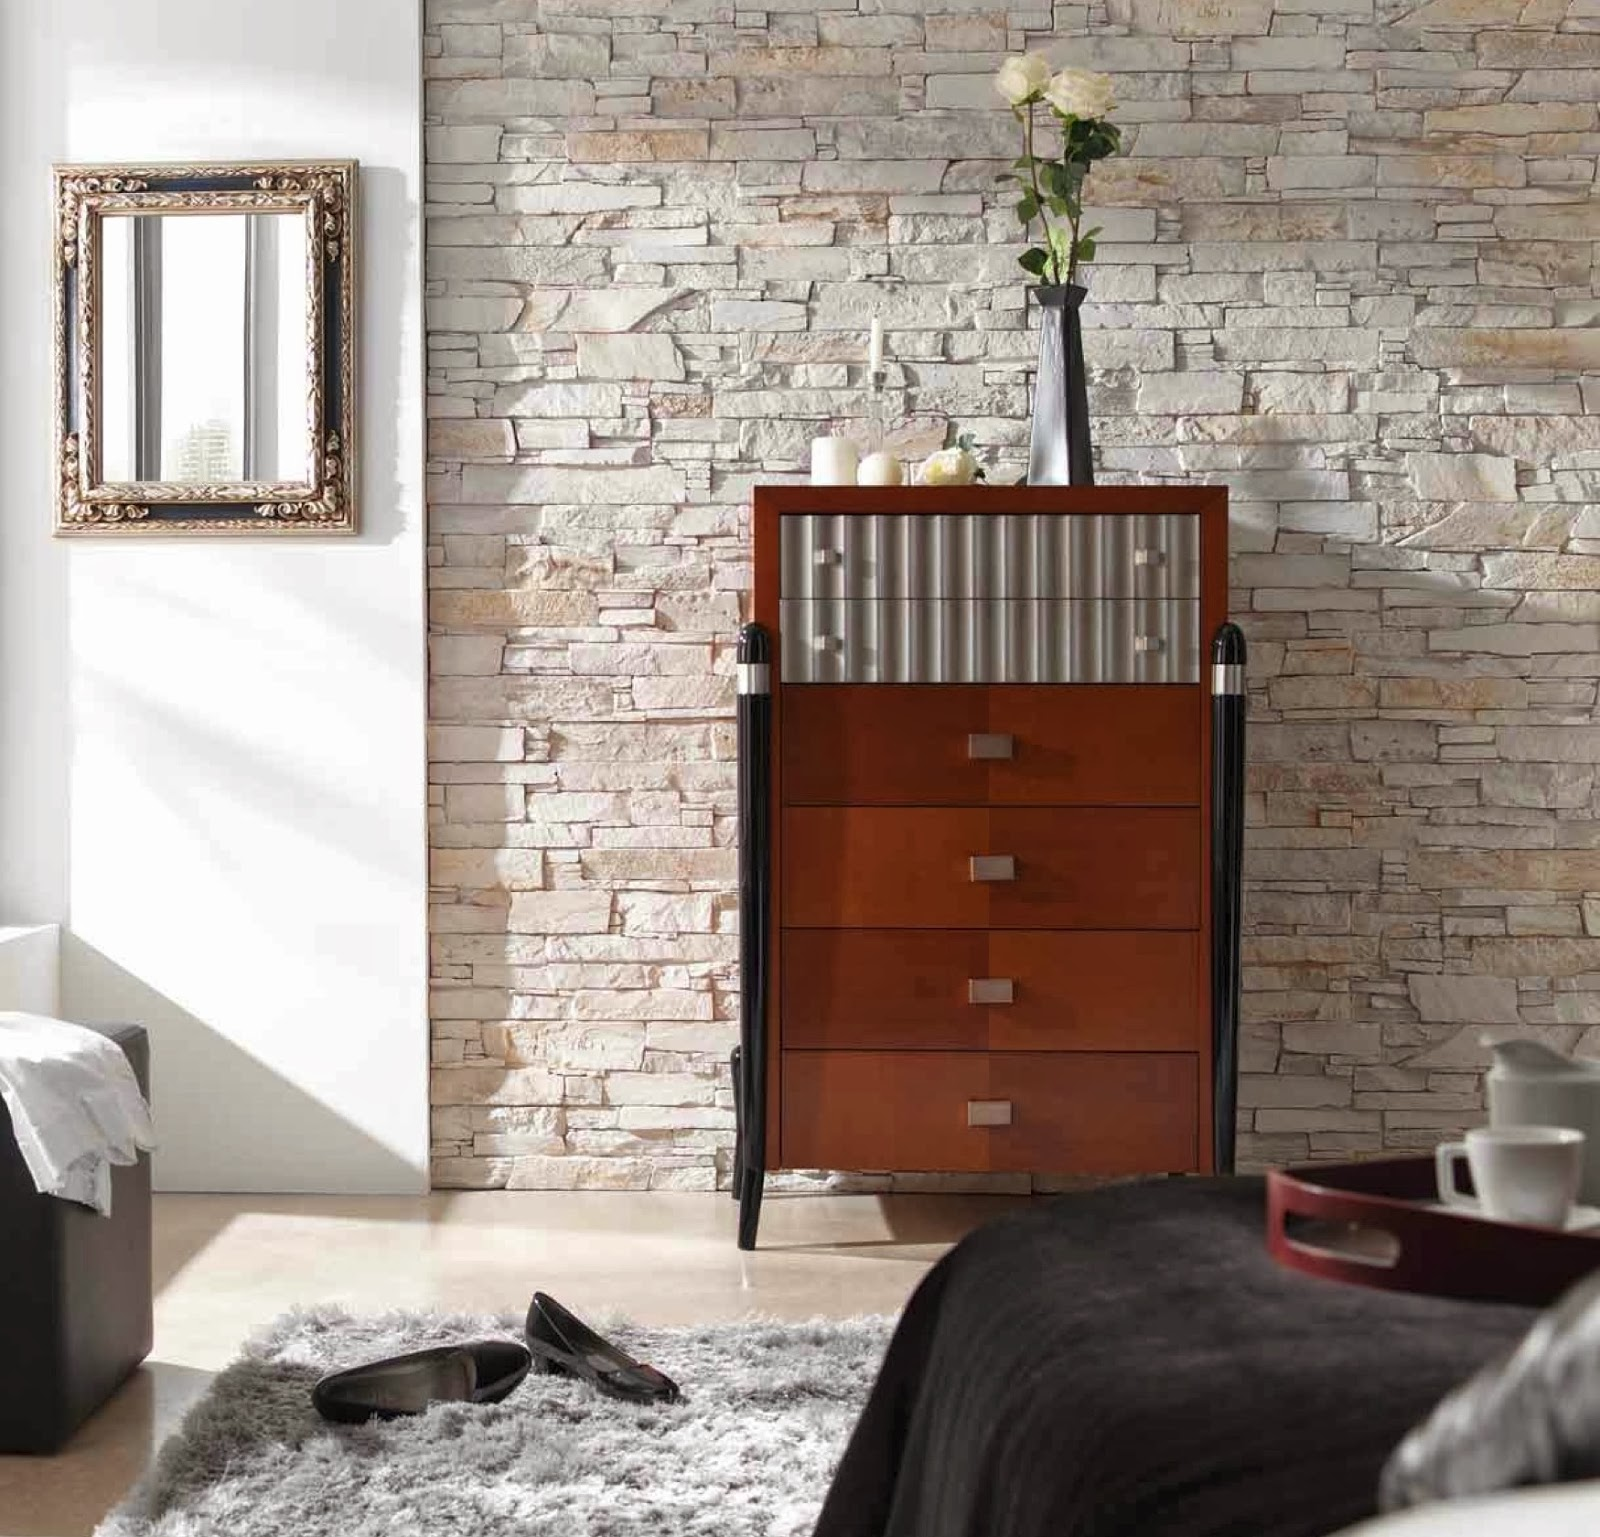 Interior Brick Wall Tiles Fabulous Faux Contemporary Interior Wall Panels From